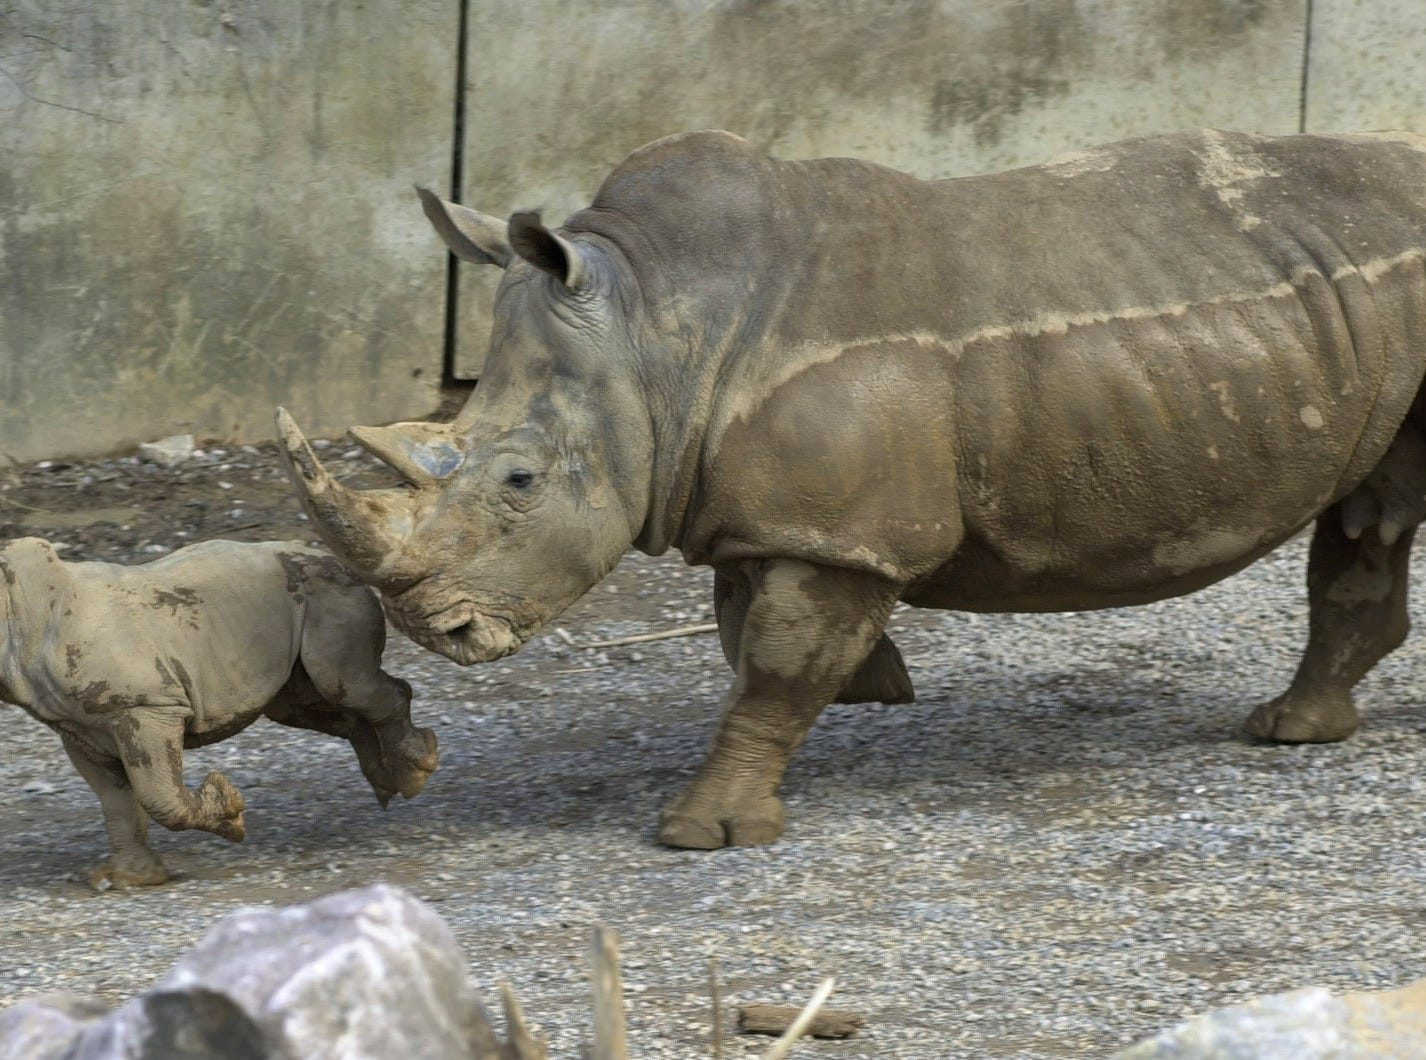 The Knoxville Zoo has a new attraction, a baby rhino.  The zoo is experiencing growth, expanding its facilities, and looking forward to a promising year.